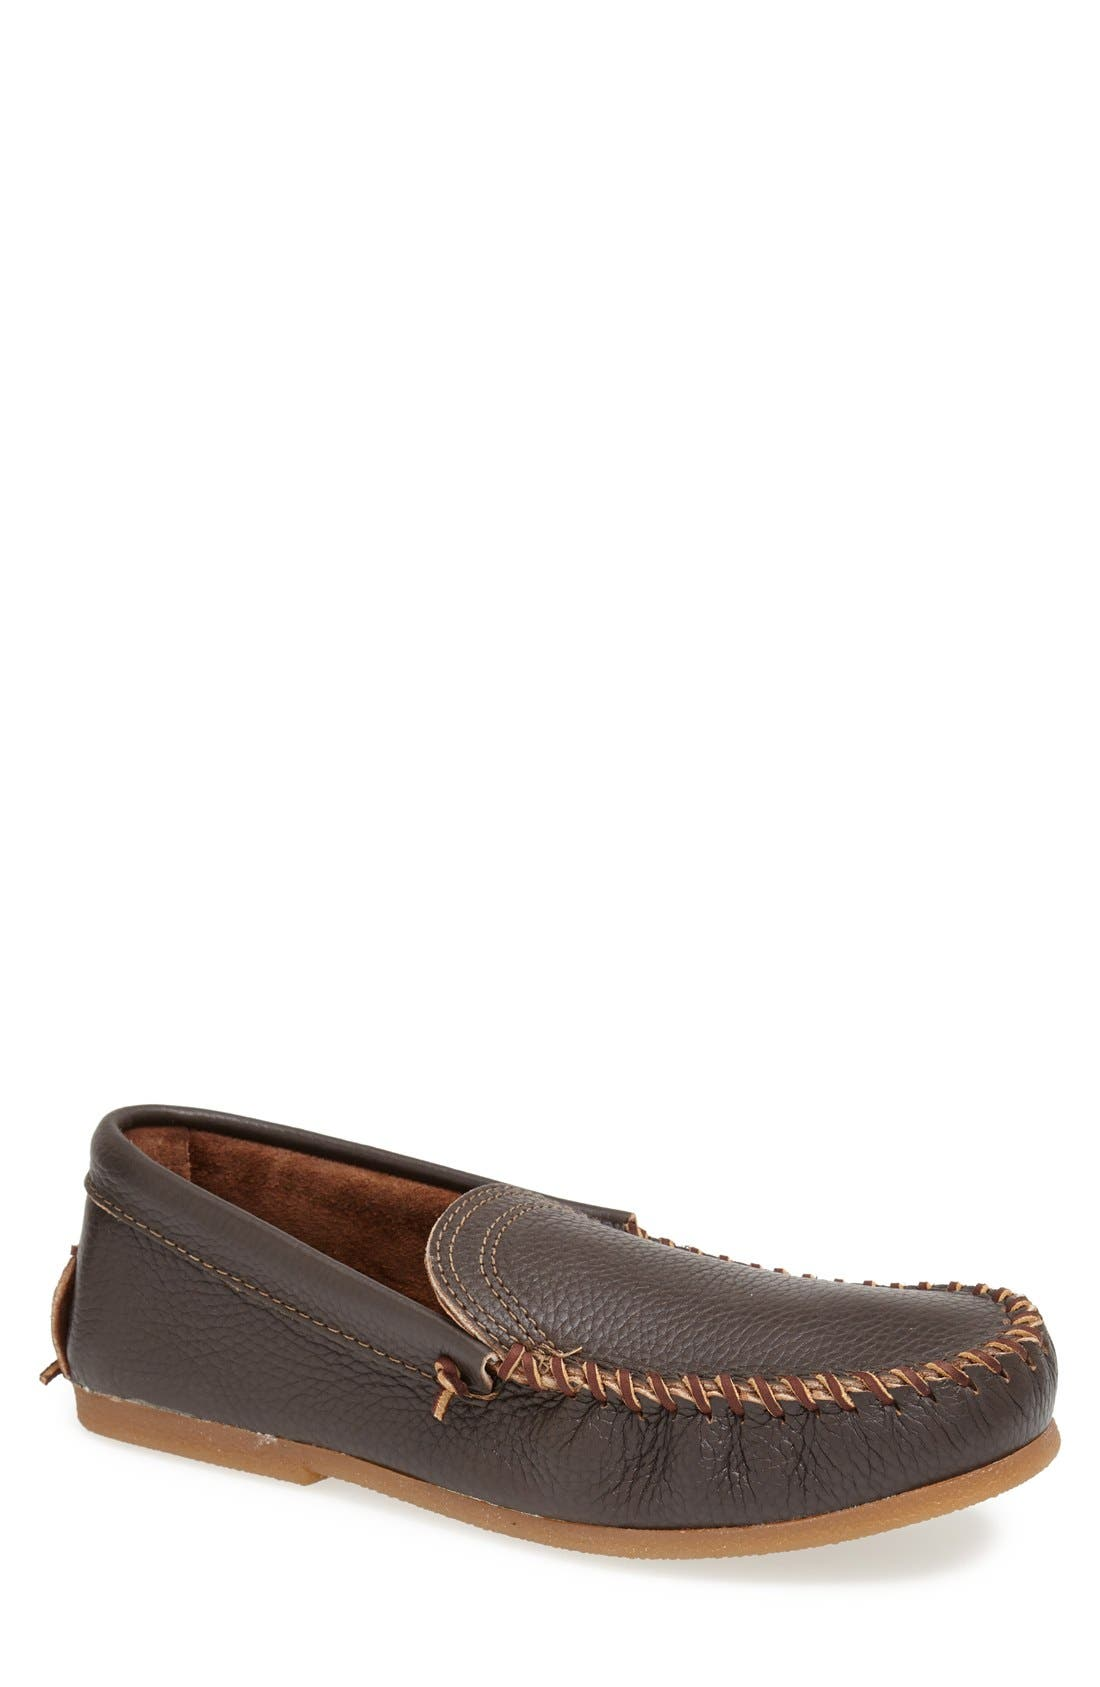 Venetian Loafer,                         Main,                         color, Dark Brown